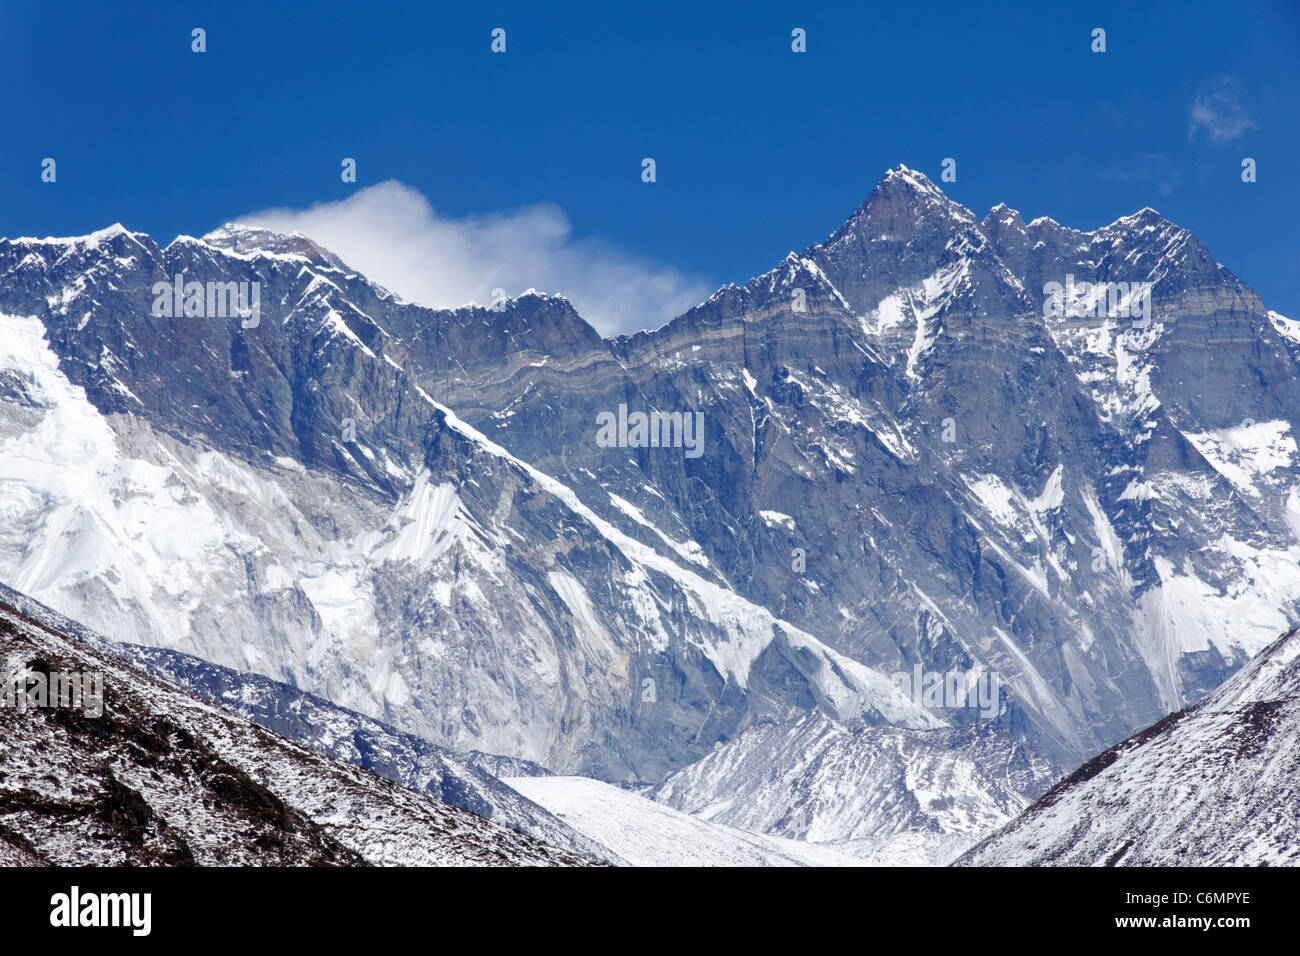 Lhotse and Nuptse mountains with the plume blowing from the summit of Everest behind them, Nepal - Stock Image